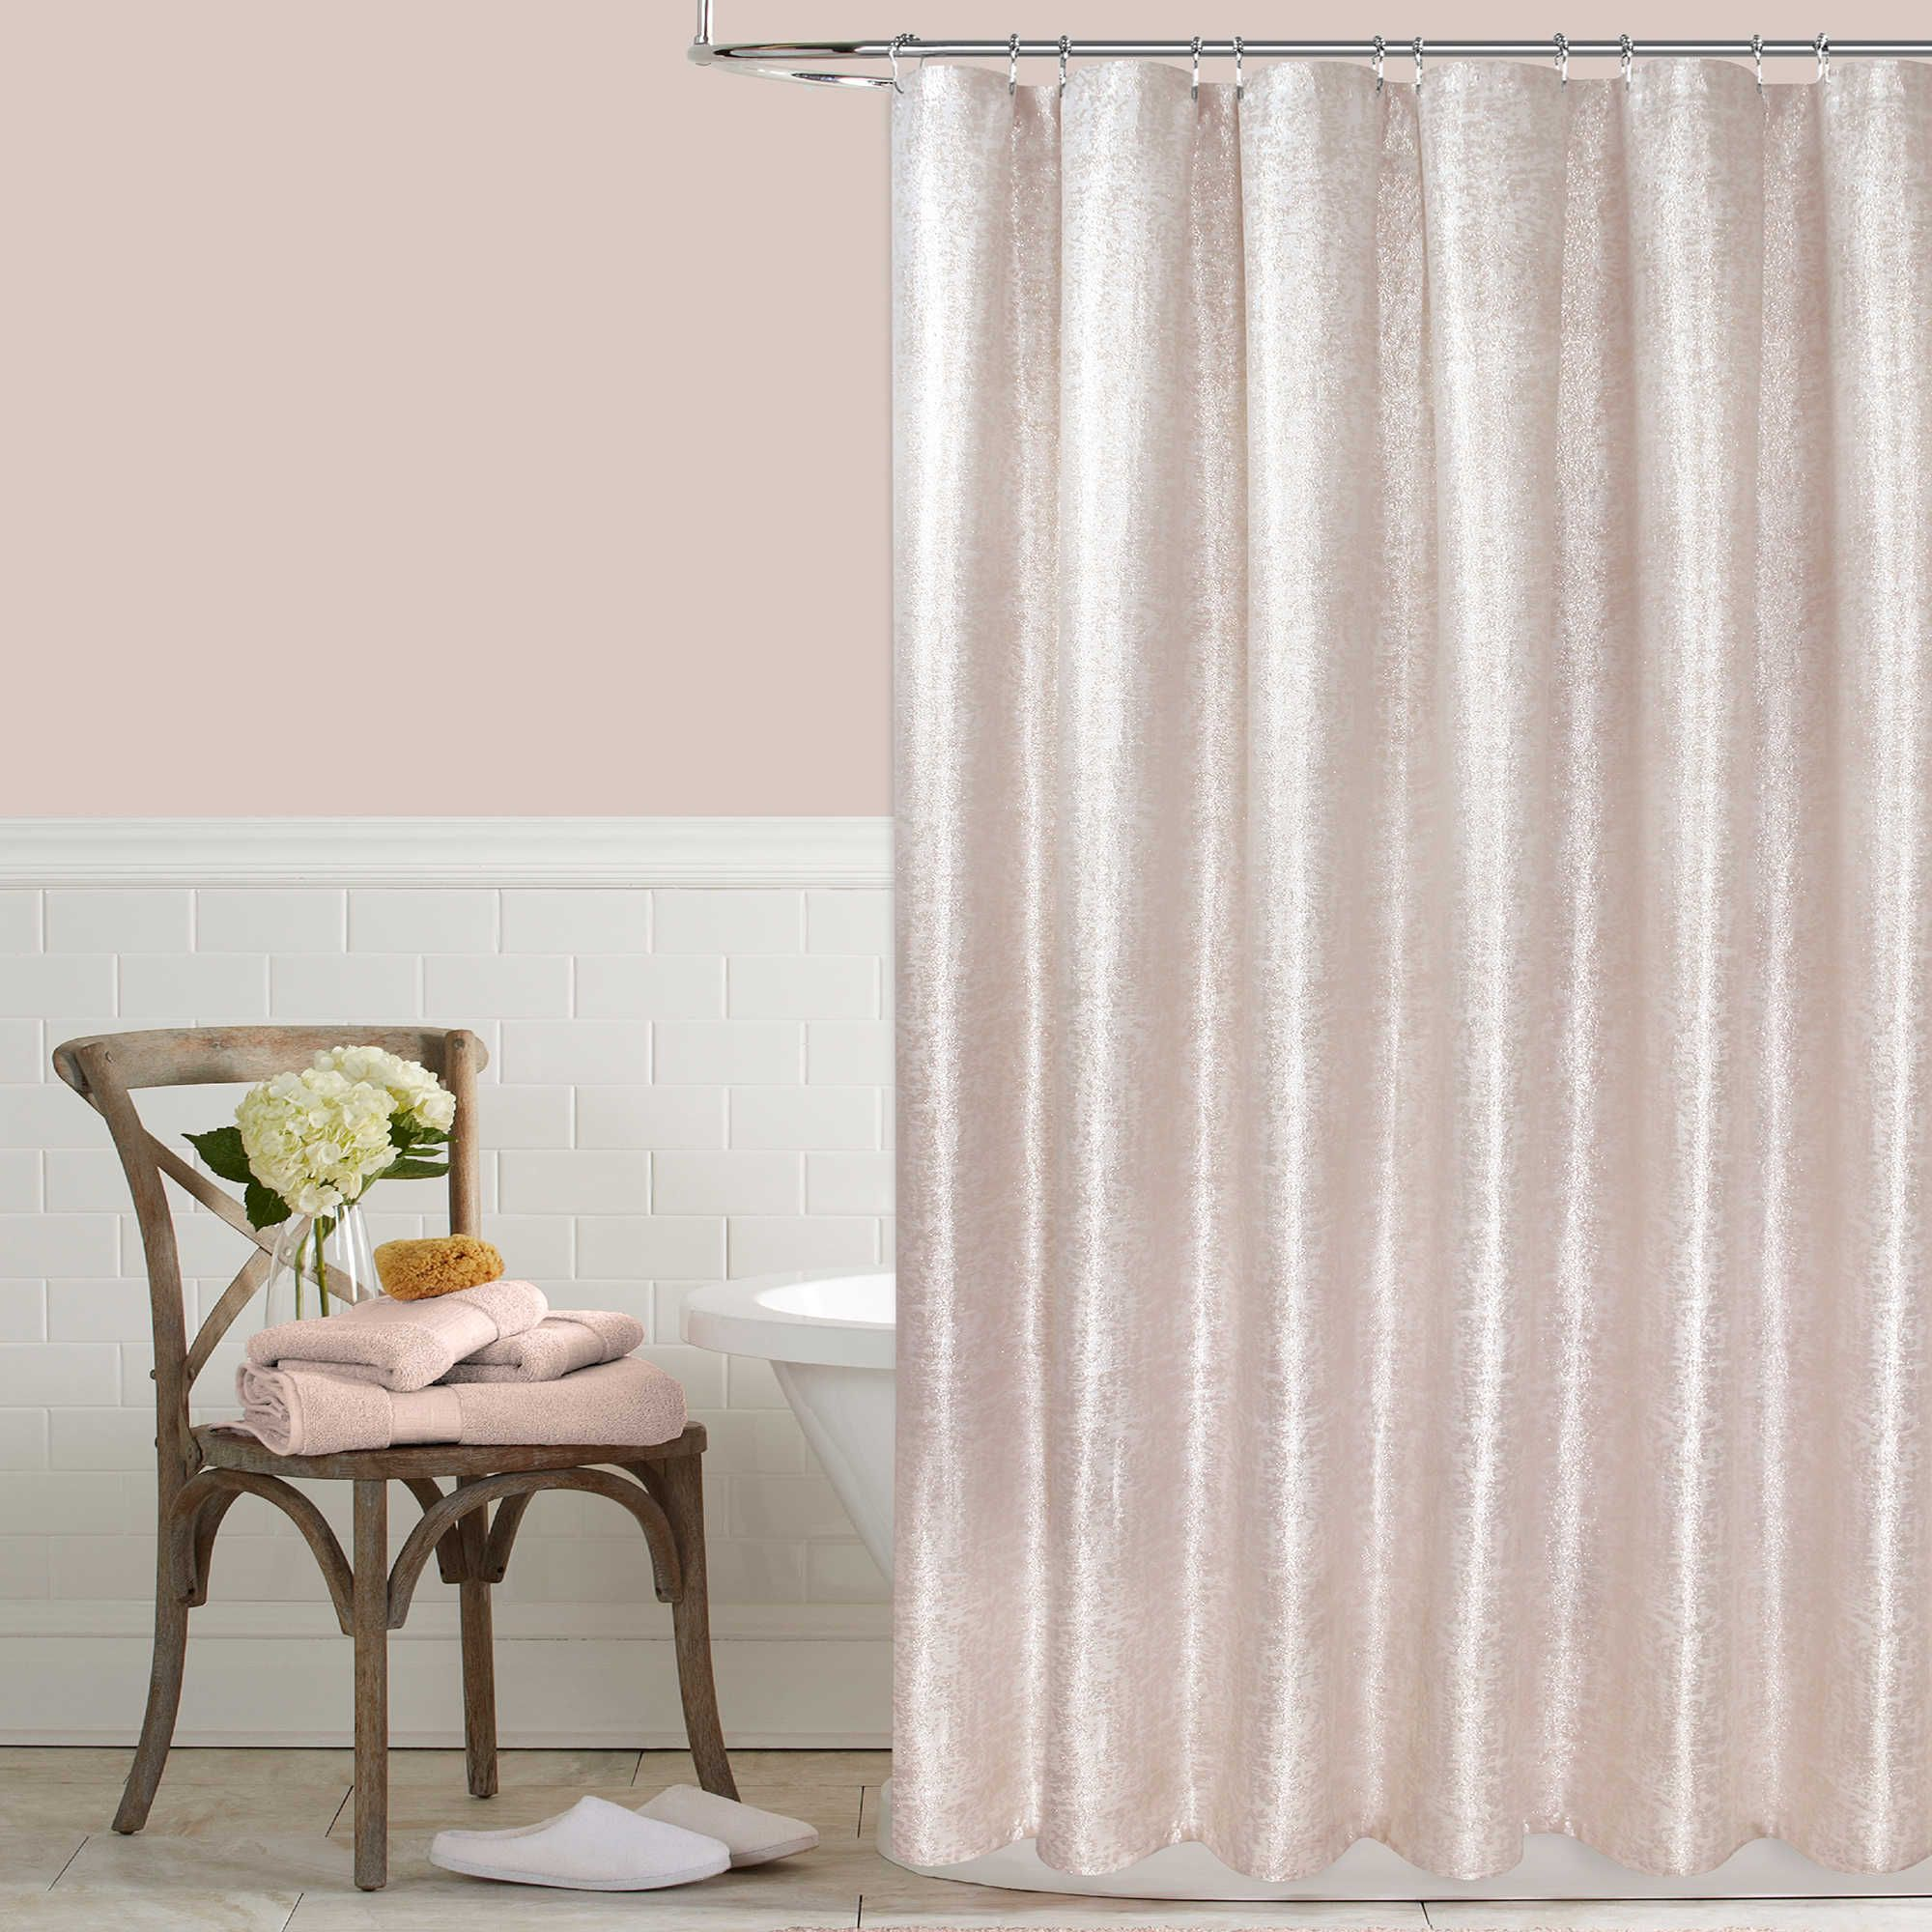 Cottage Shower Curtain Colordrift Celina Metallic Shower Curtain Collection Bathrooms